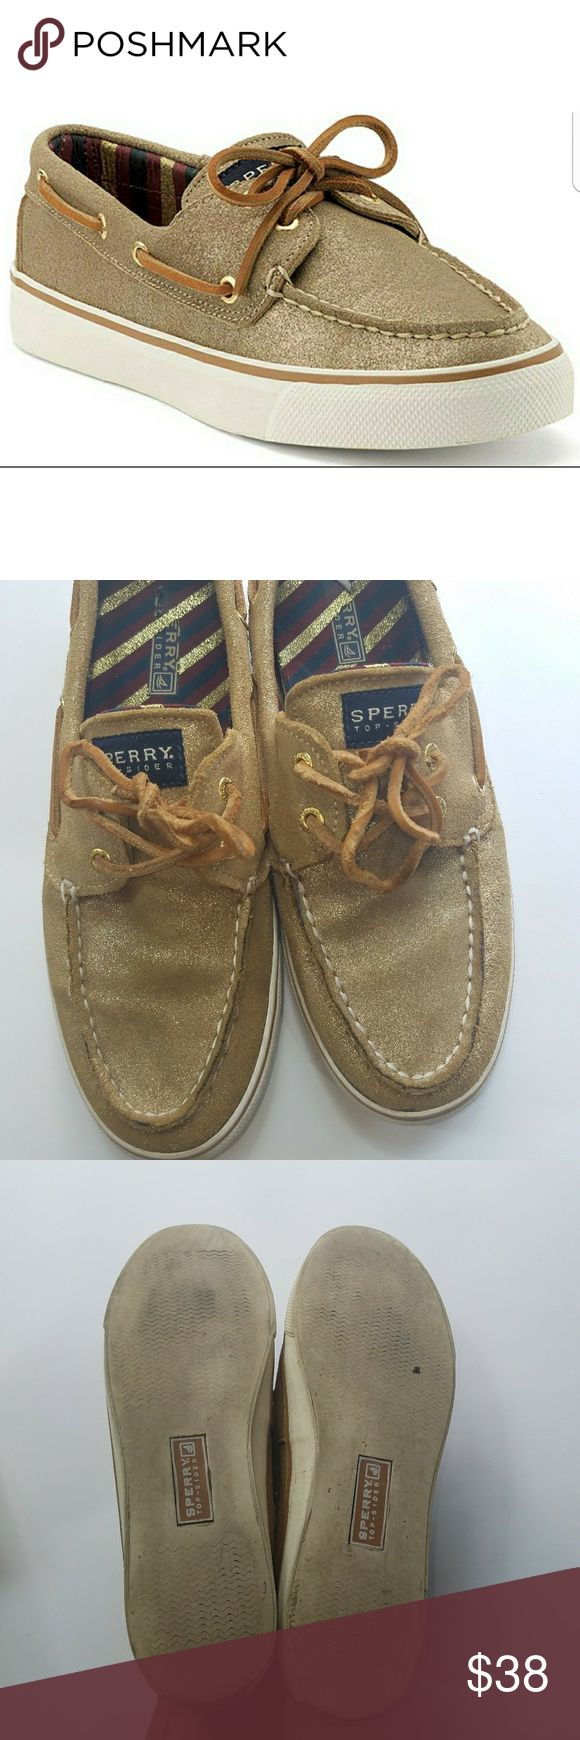 """""""ACCEPTING 30% OFF OFFERS"""" SALE [Sperry Top Sider] Bahama 2 Eye Sparkle Suede Sperry Top Sider Bahama 2 Eye Sparkle Suede  Womens size 8.5 Sperry Top-Sider Shoes Flats & Loafers"""